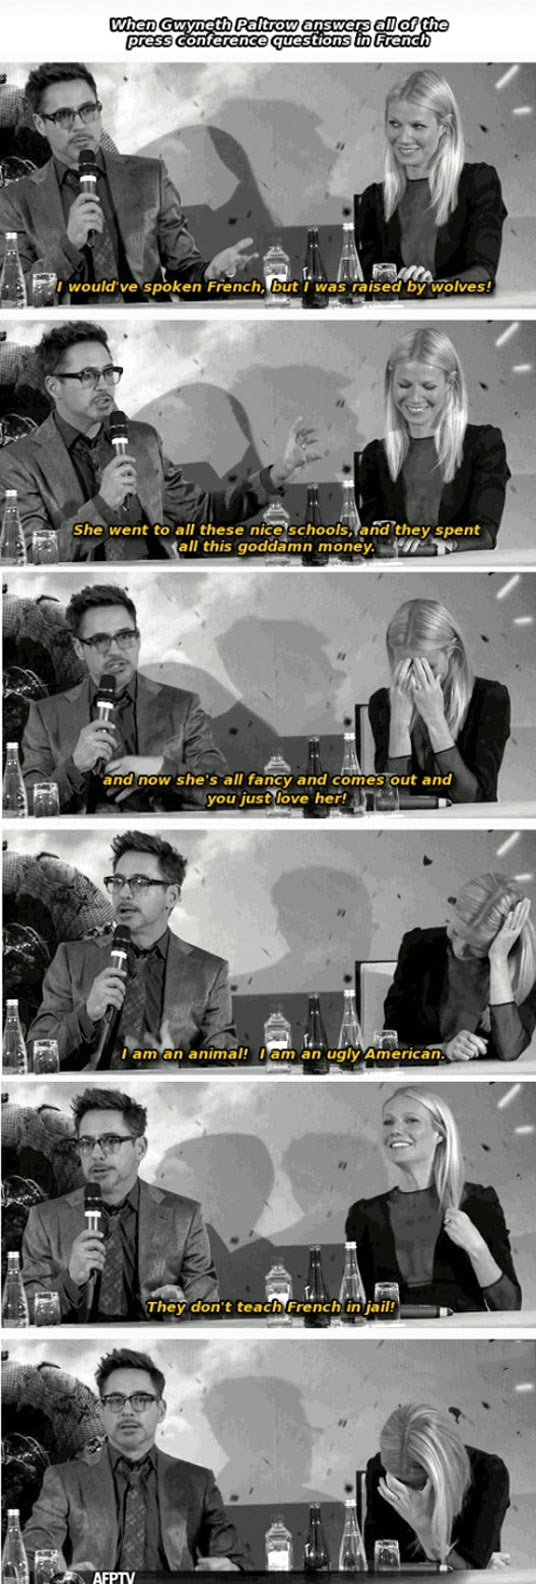 cool-Robert-Downey-Jr-conference-French